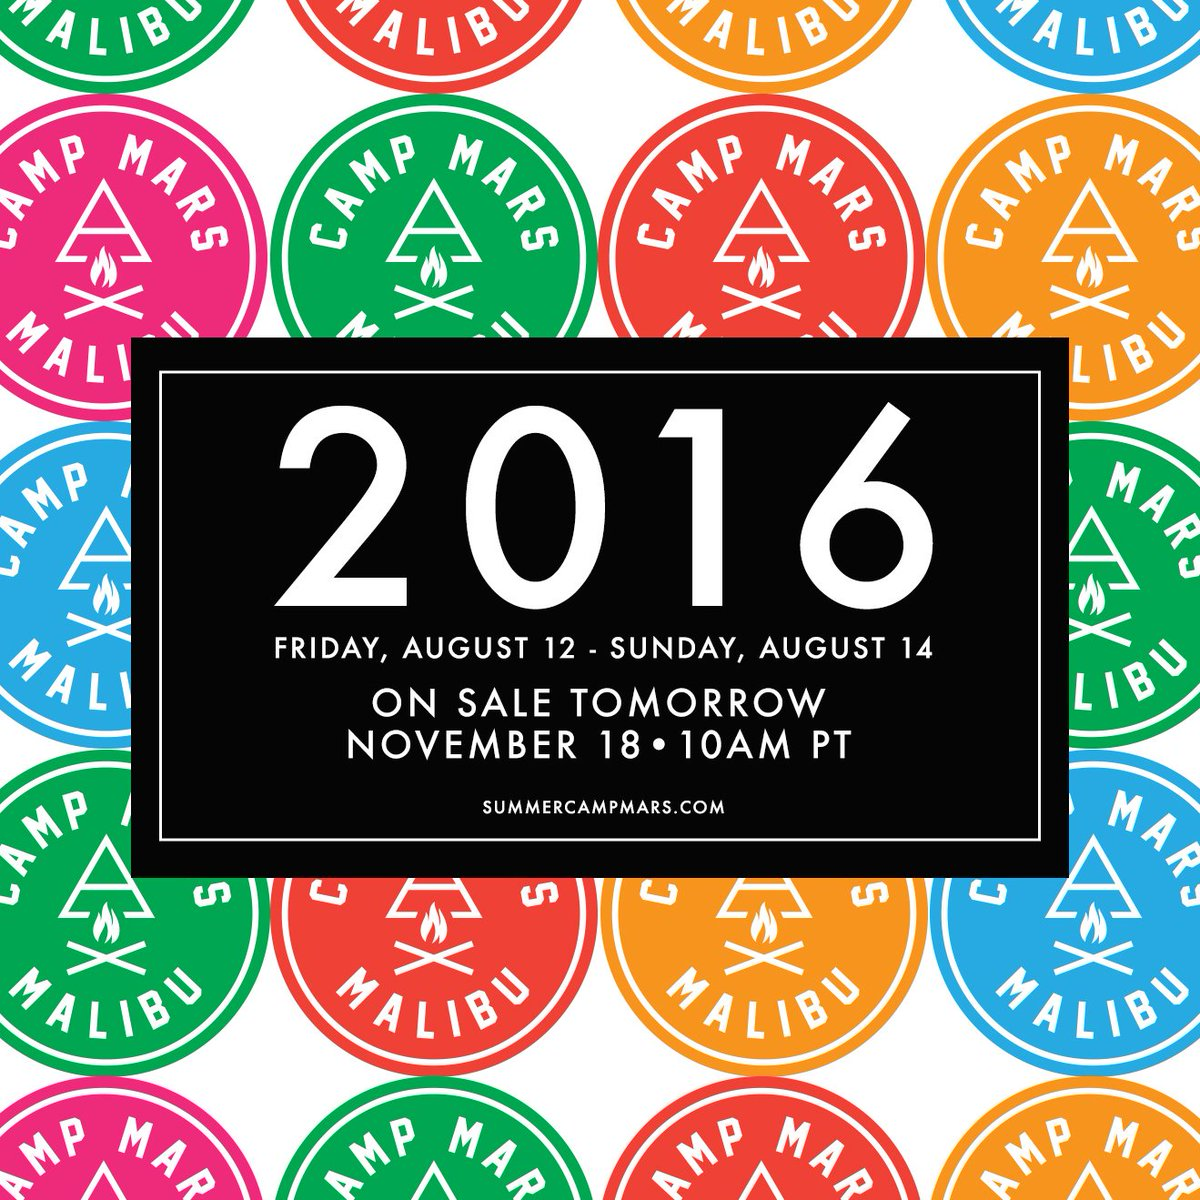 RT @30SECONDSTOMARS: Ready for Music, Art, Nature, Friends, Food + FUN? Tix for @SummerCampMars 2016 ON SALE TOMORROW, NOV 18 10AM PT! http…